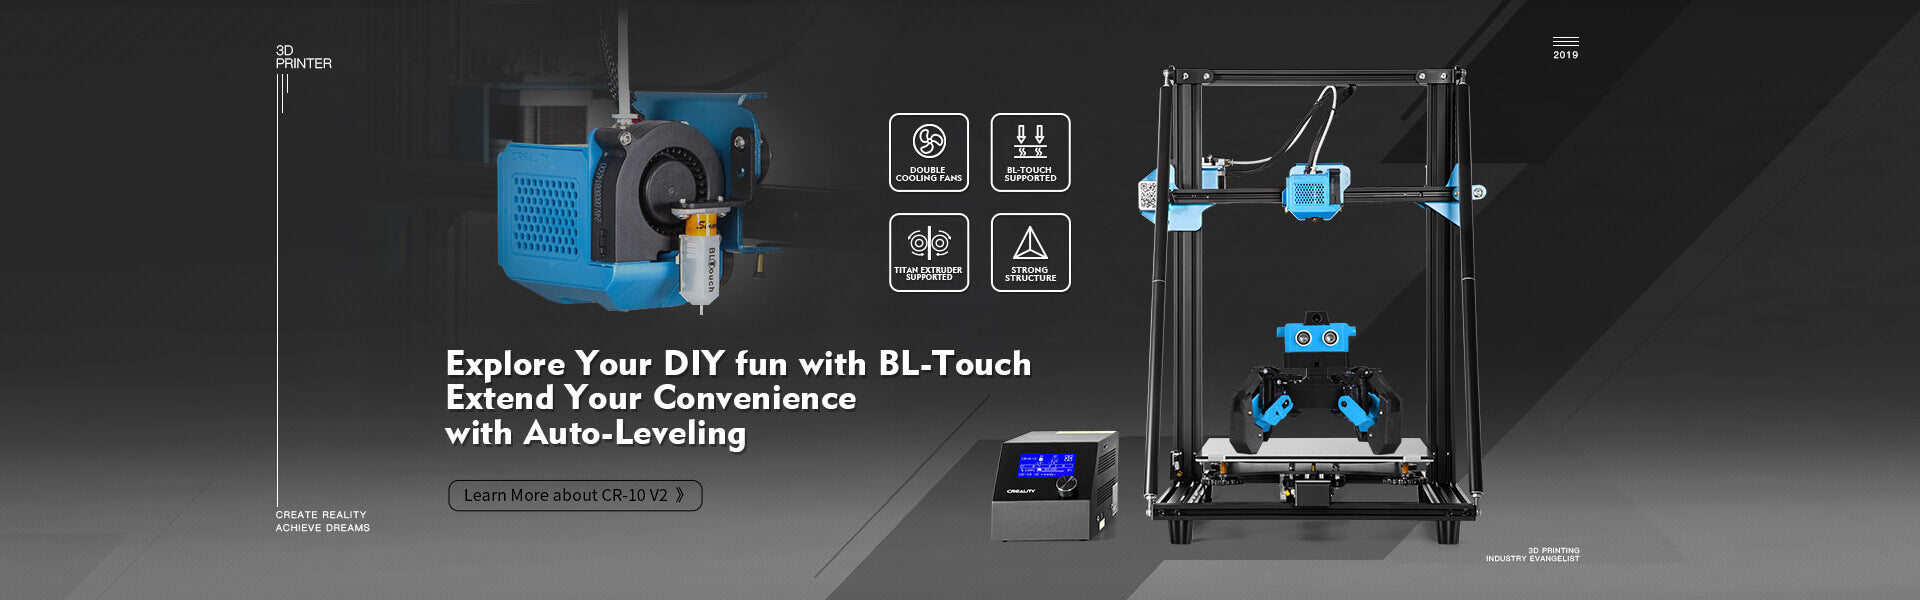 The-Importance-of-BL-Touch-in-Automatic-Leveling-Bed-on-3D-Printer-Creality3d-08